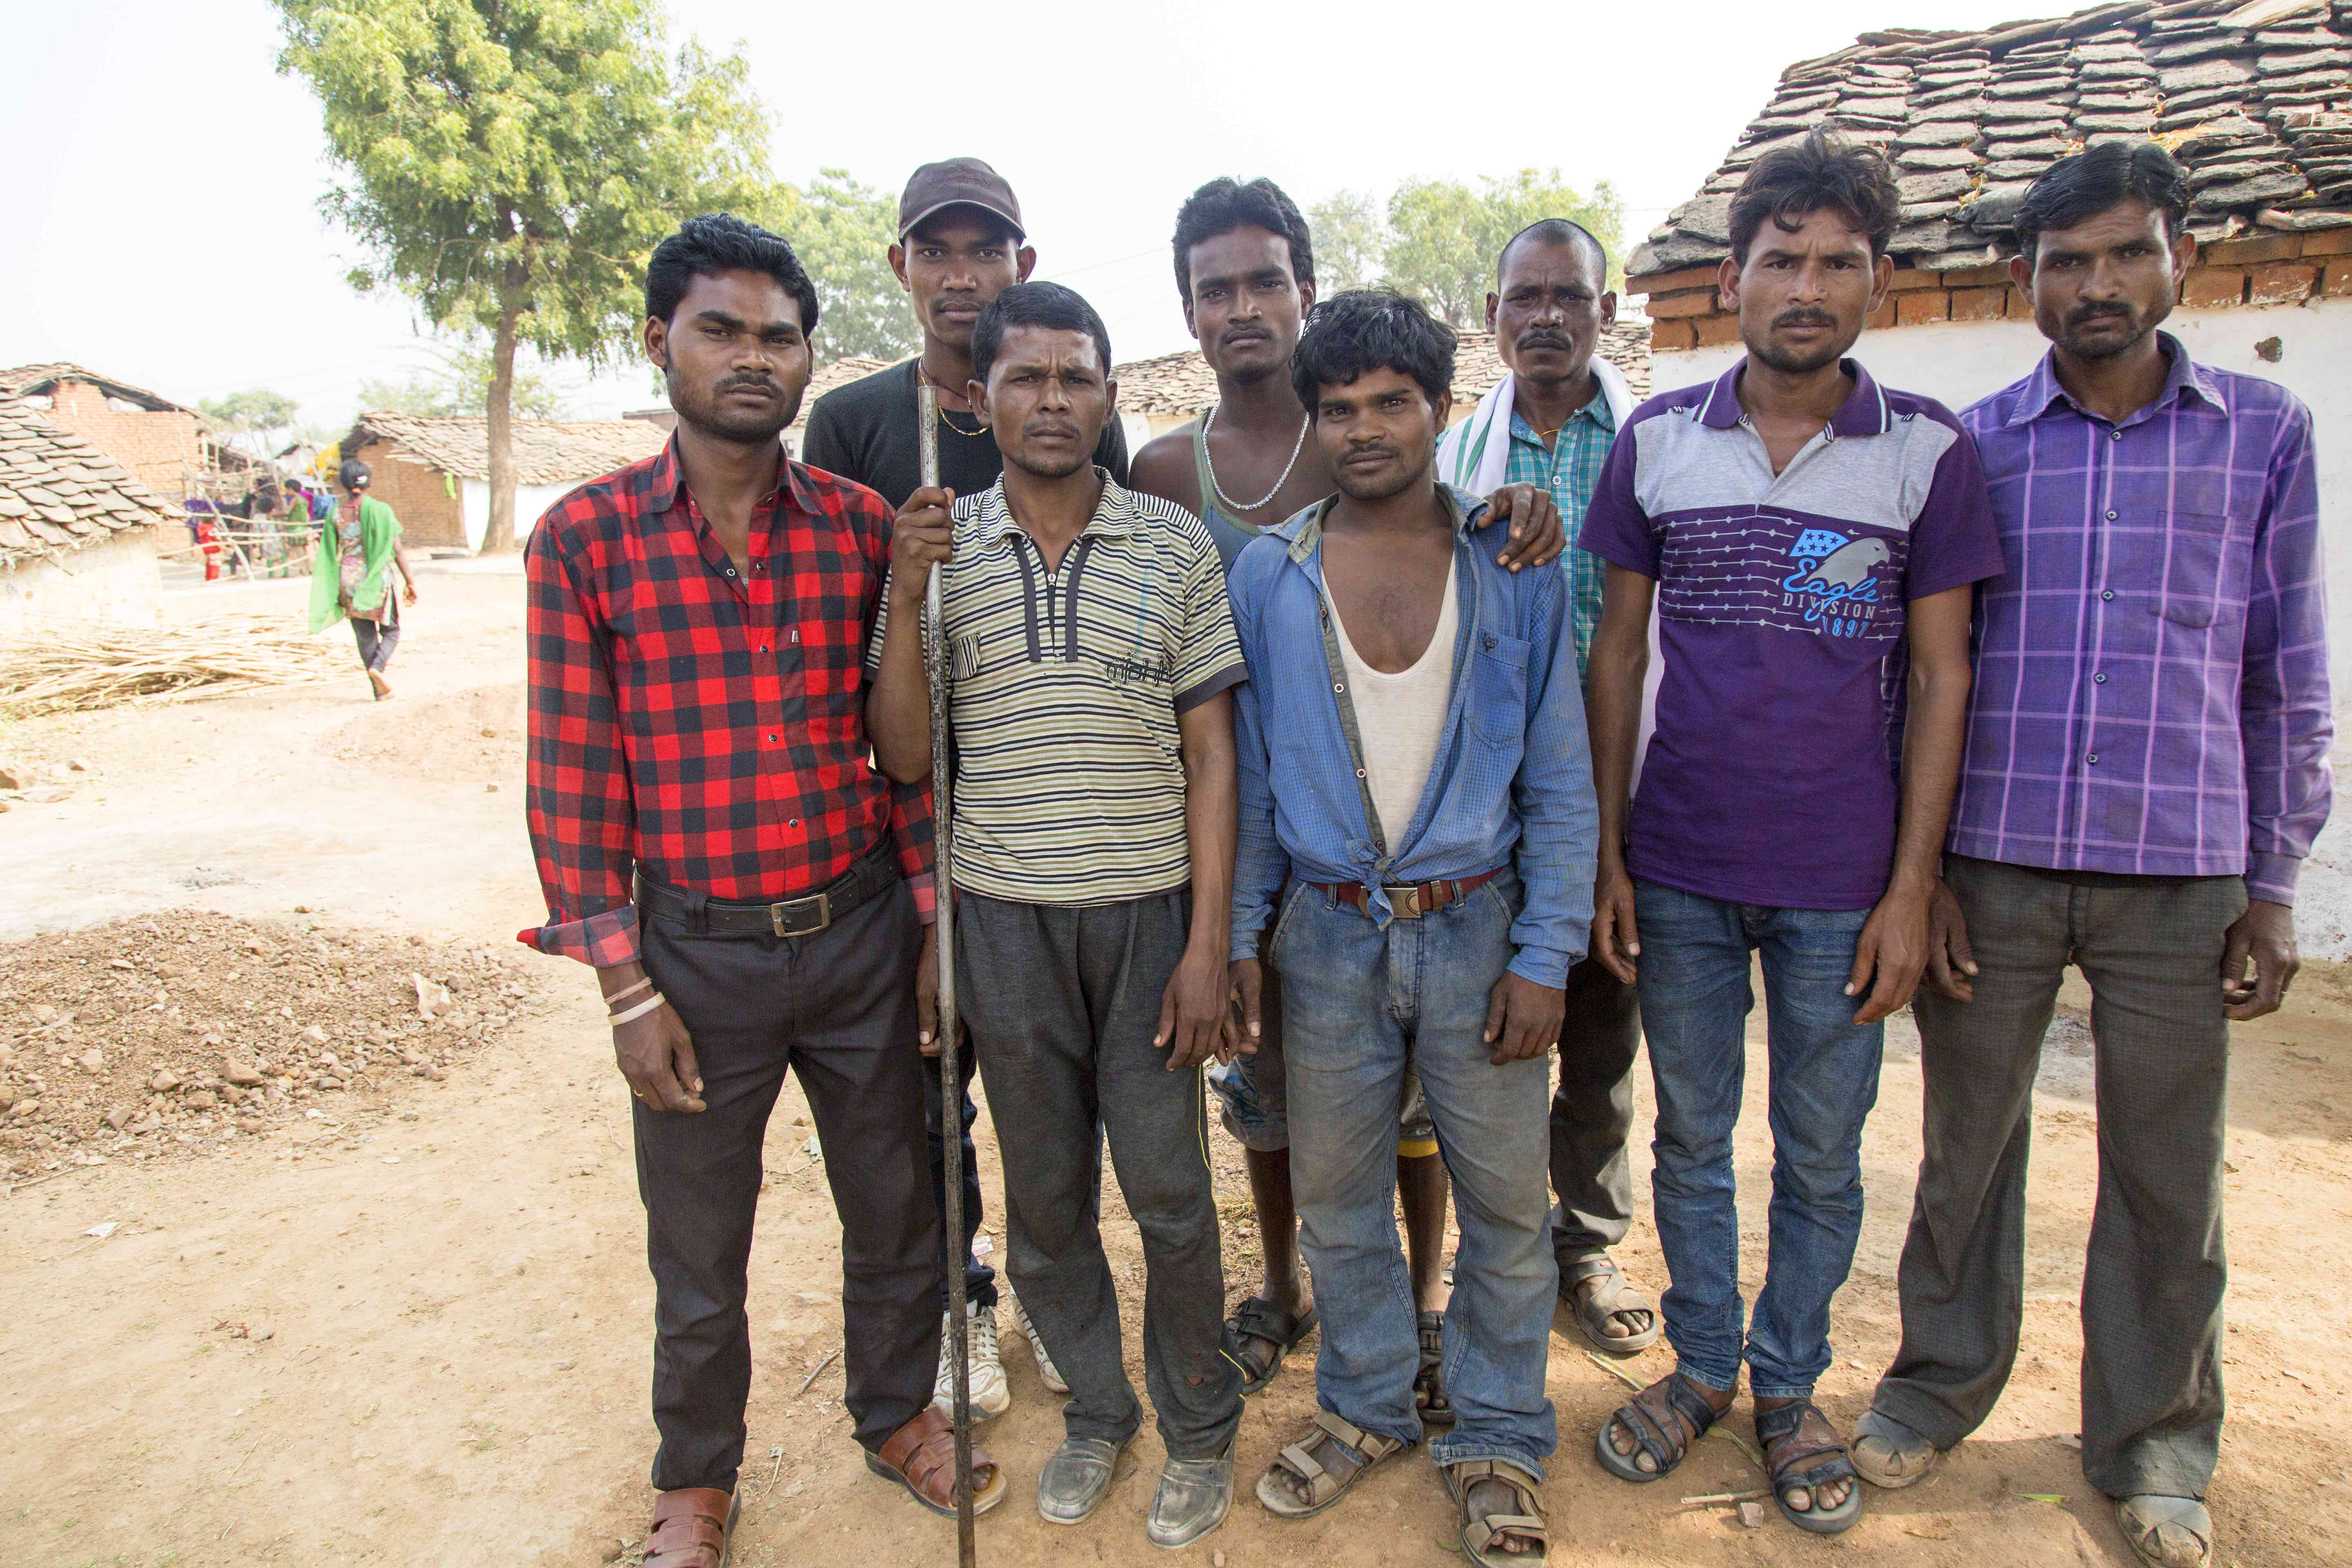 A group of migrant labourers, who work seasonally in various states across North India, recently returned to their village in Tikamgarh district, Madhya Pradesh as they were unable to find work or receive their salaries in the form of cash payments. Credit: Hina Fatima